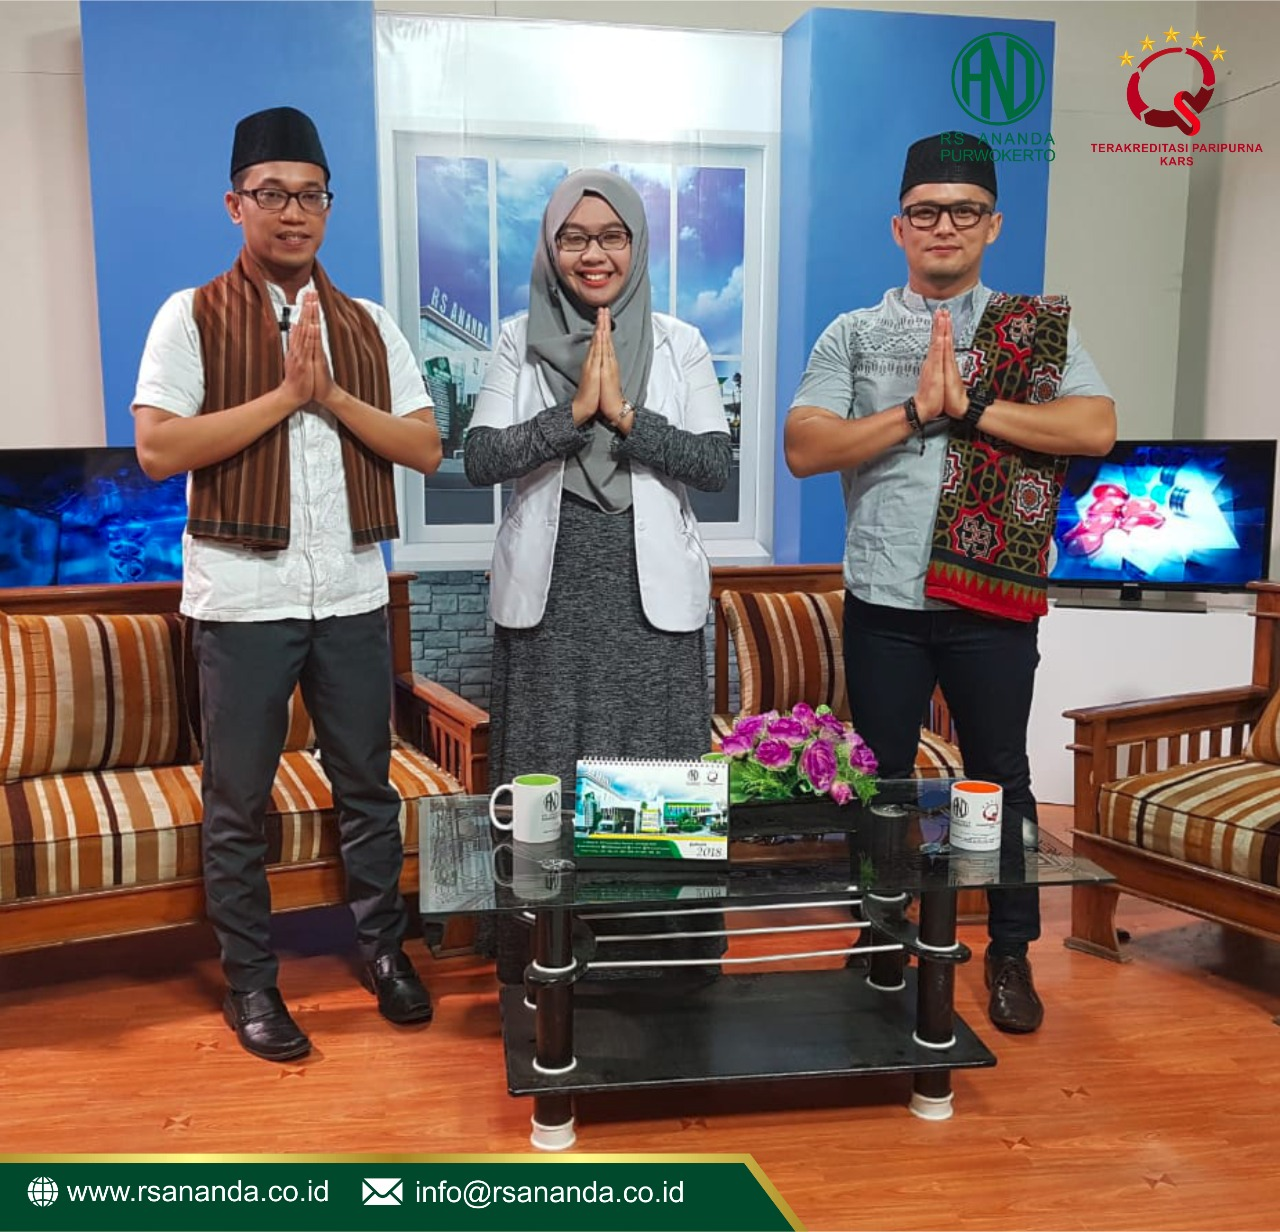 TALK SHOW DOKTERE INYONG – RS ANANDA PURWOKERTO WhatsApp Image 2018 06 20 at 13